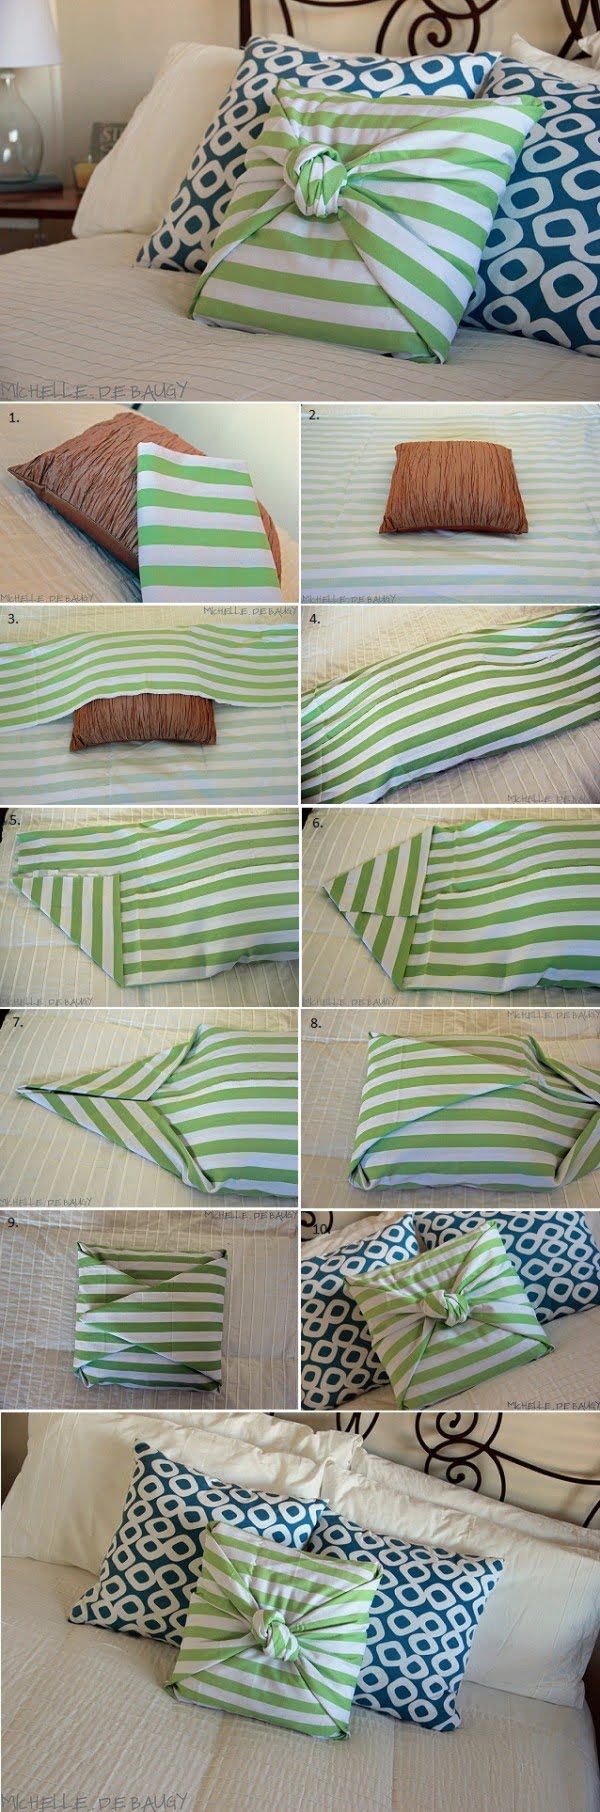 10 Insanely Easy DIY Pillow Cover Ideas - Check out how to make these very easy DIY no sew pillow cases